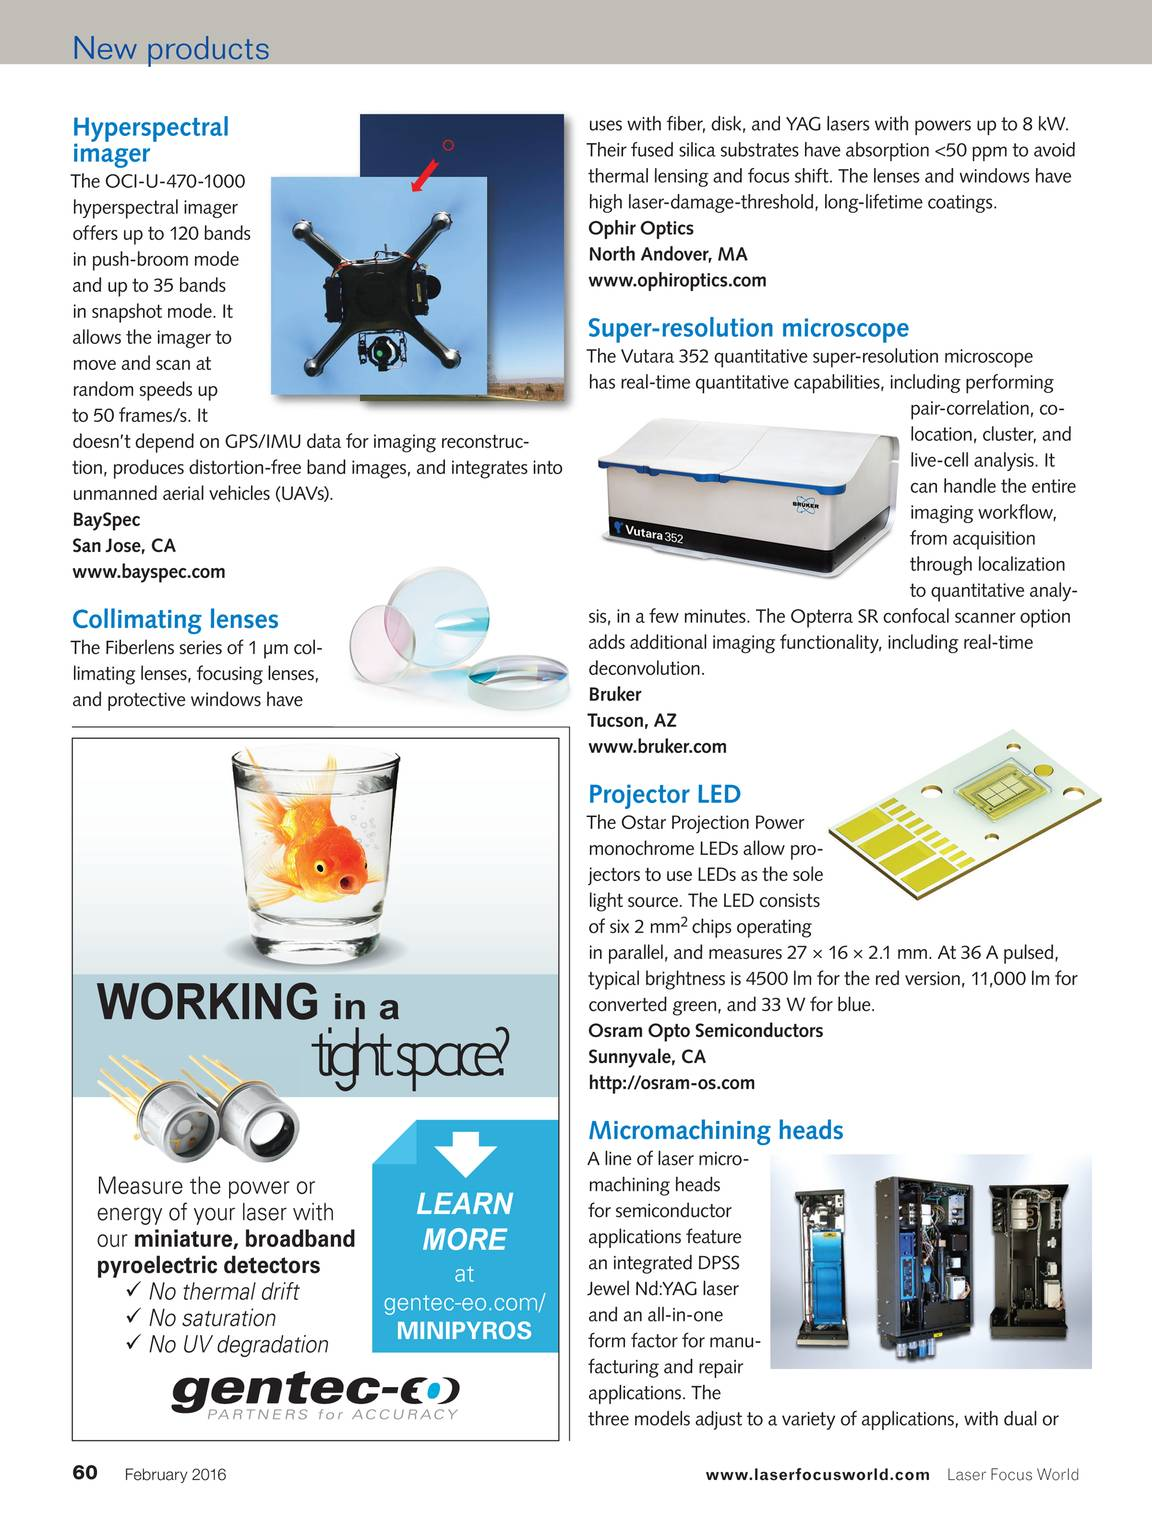 Laser Focus World - February 2016 - page 61